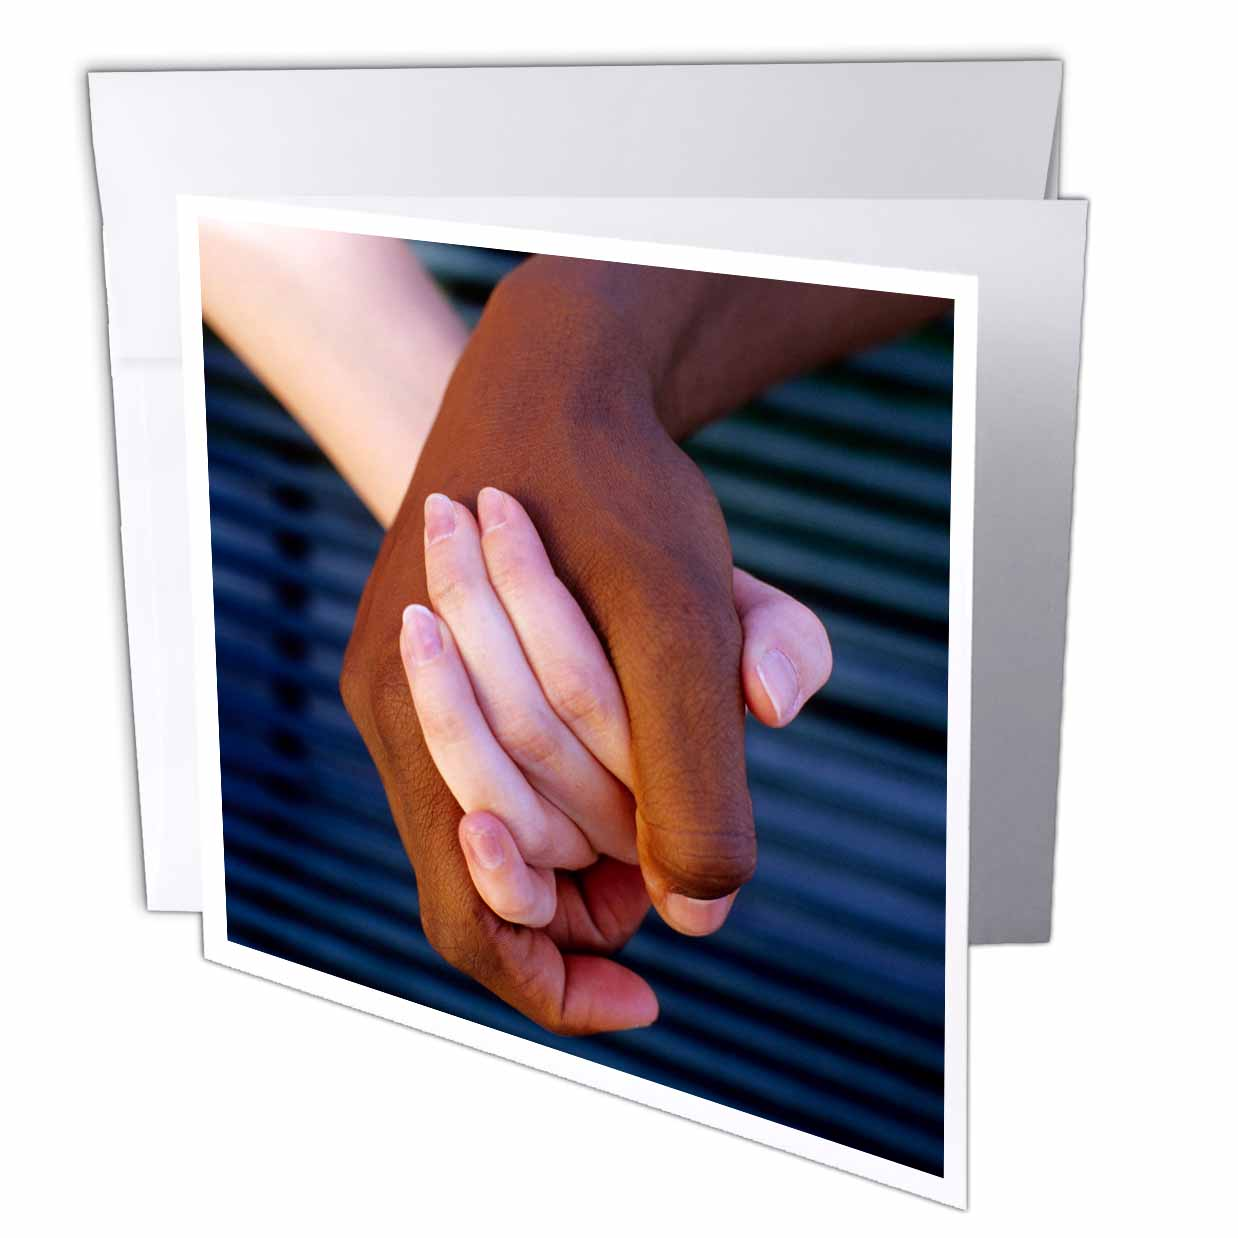 Free interracial greeting cards speaking, opinion